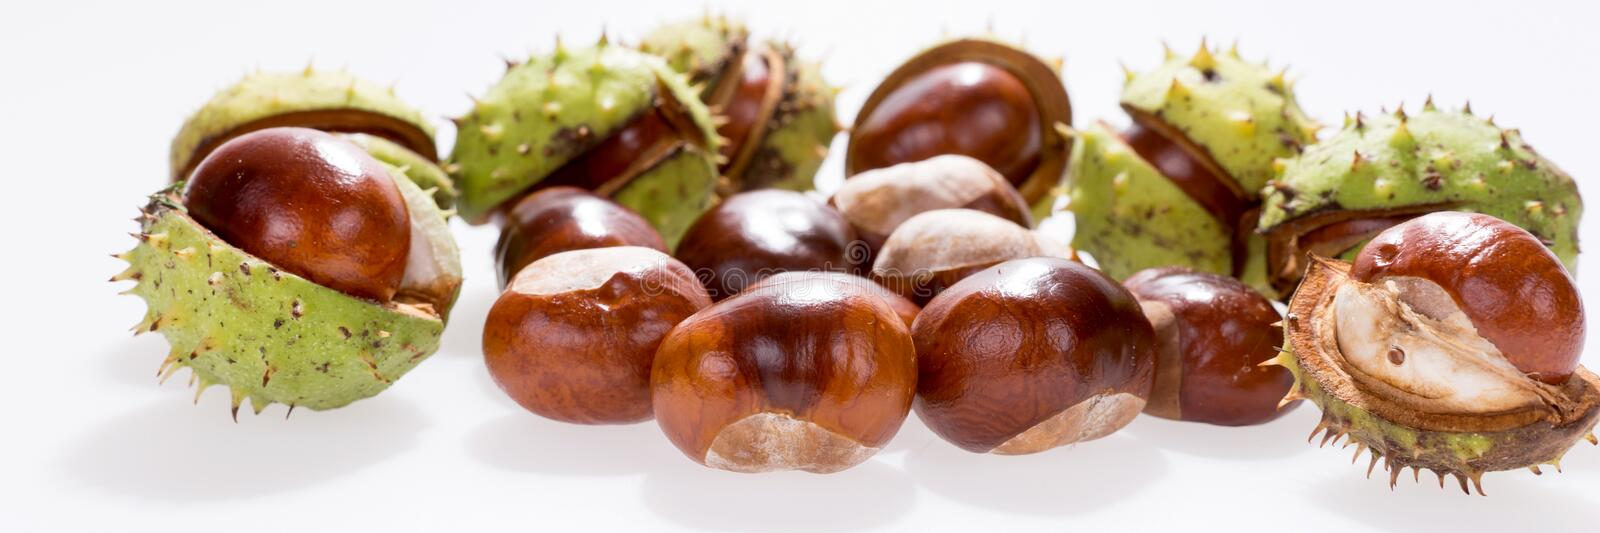 Chestnuts isolated on white, fruits chestnut, Panoramic image. Chestnuts isolated on white, fruits chestnut, Aesculus hippocastanum. Panoramic image royalty free stock photos